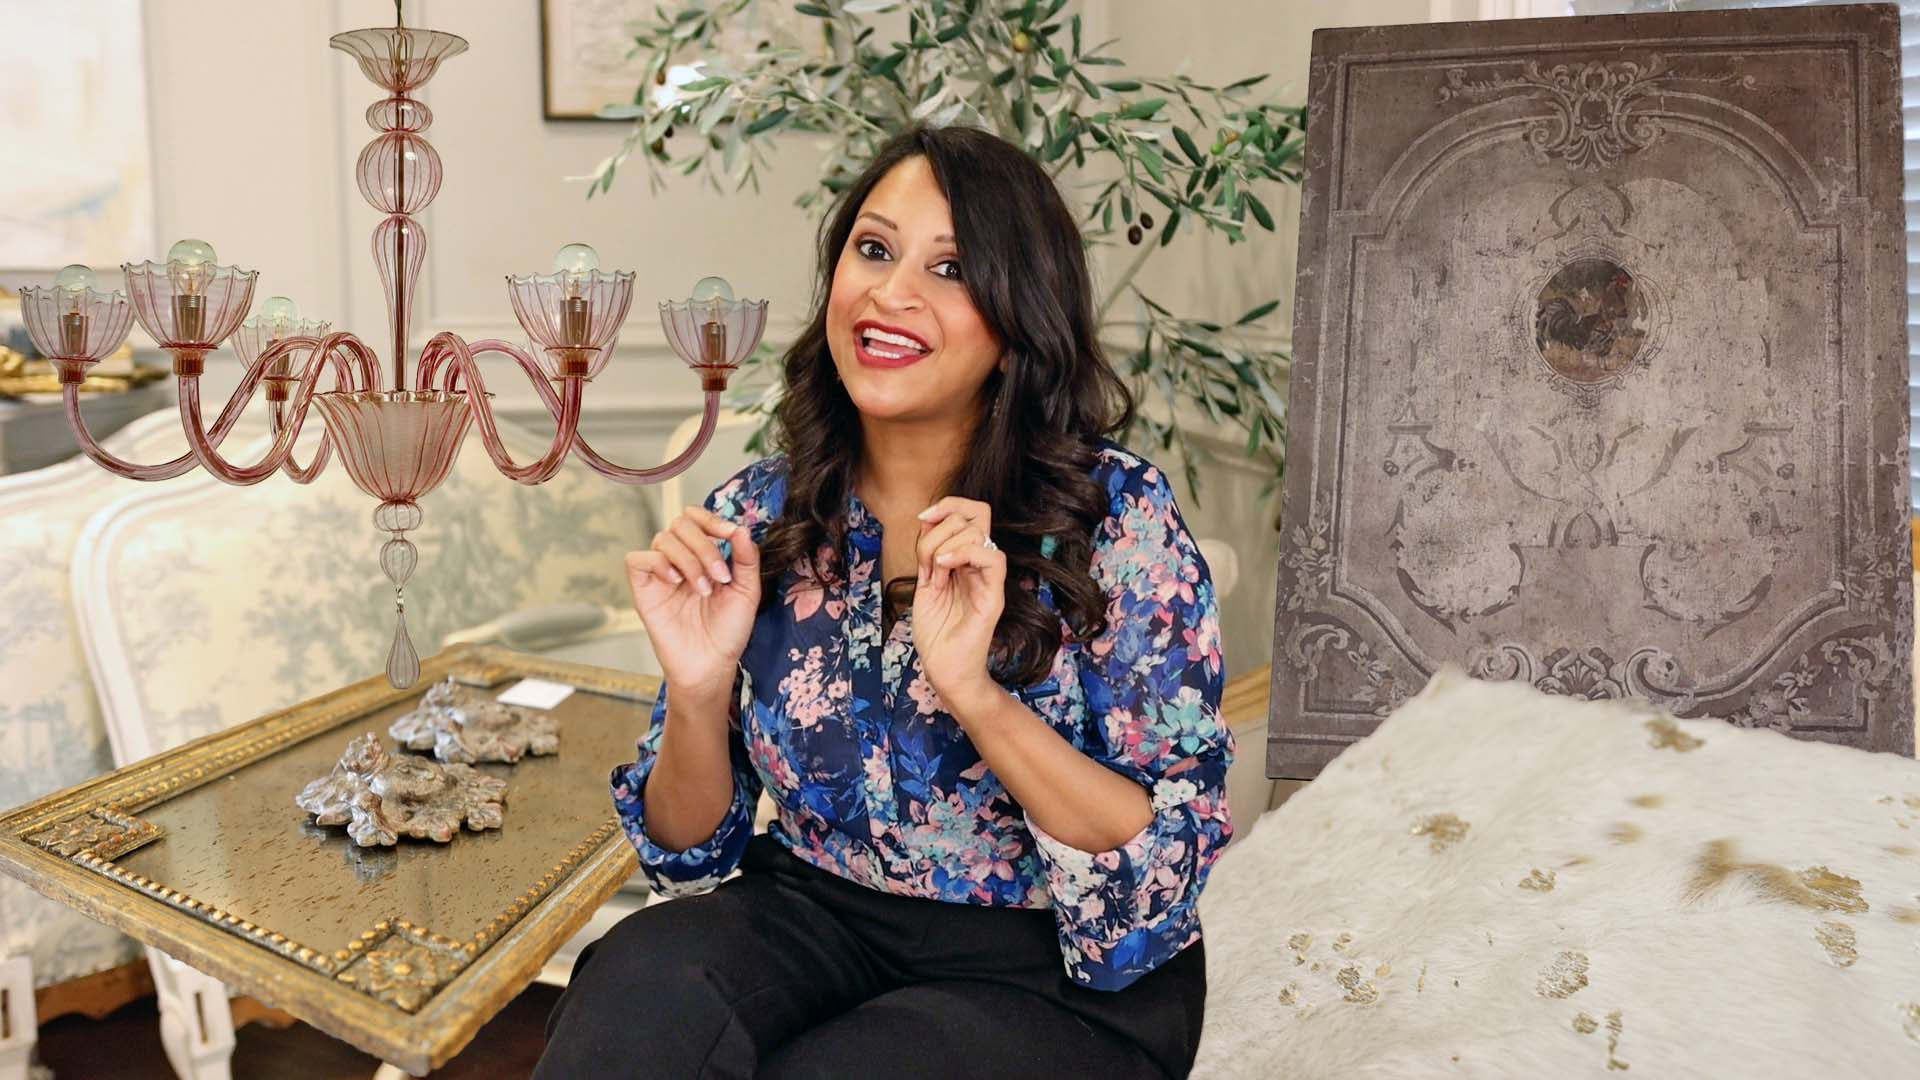 Interior designer, Amitha Verma, shares the top farmhouse fall decor trends that are up and coming for fall 2021 and how to style them.